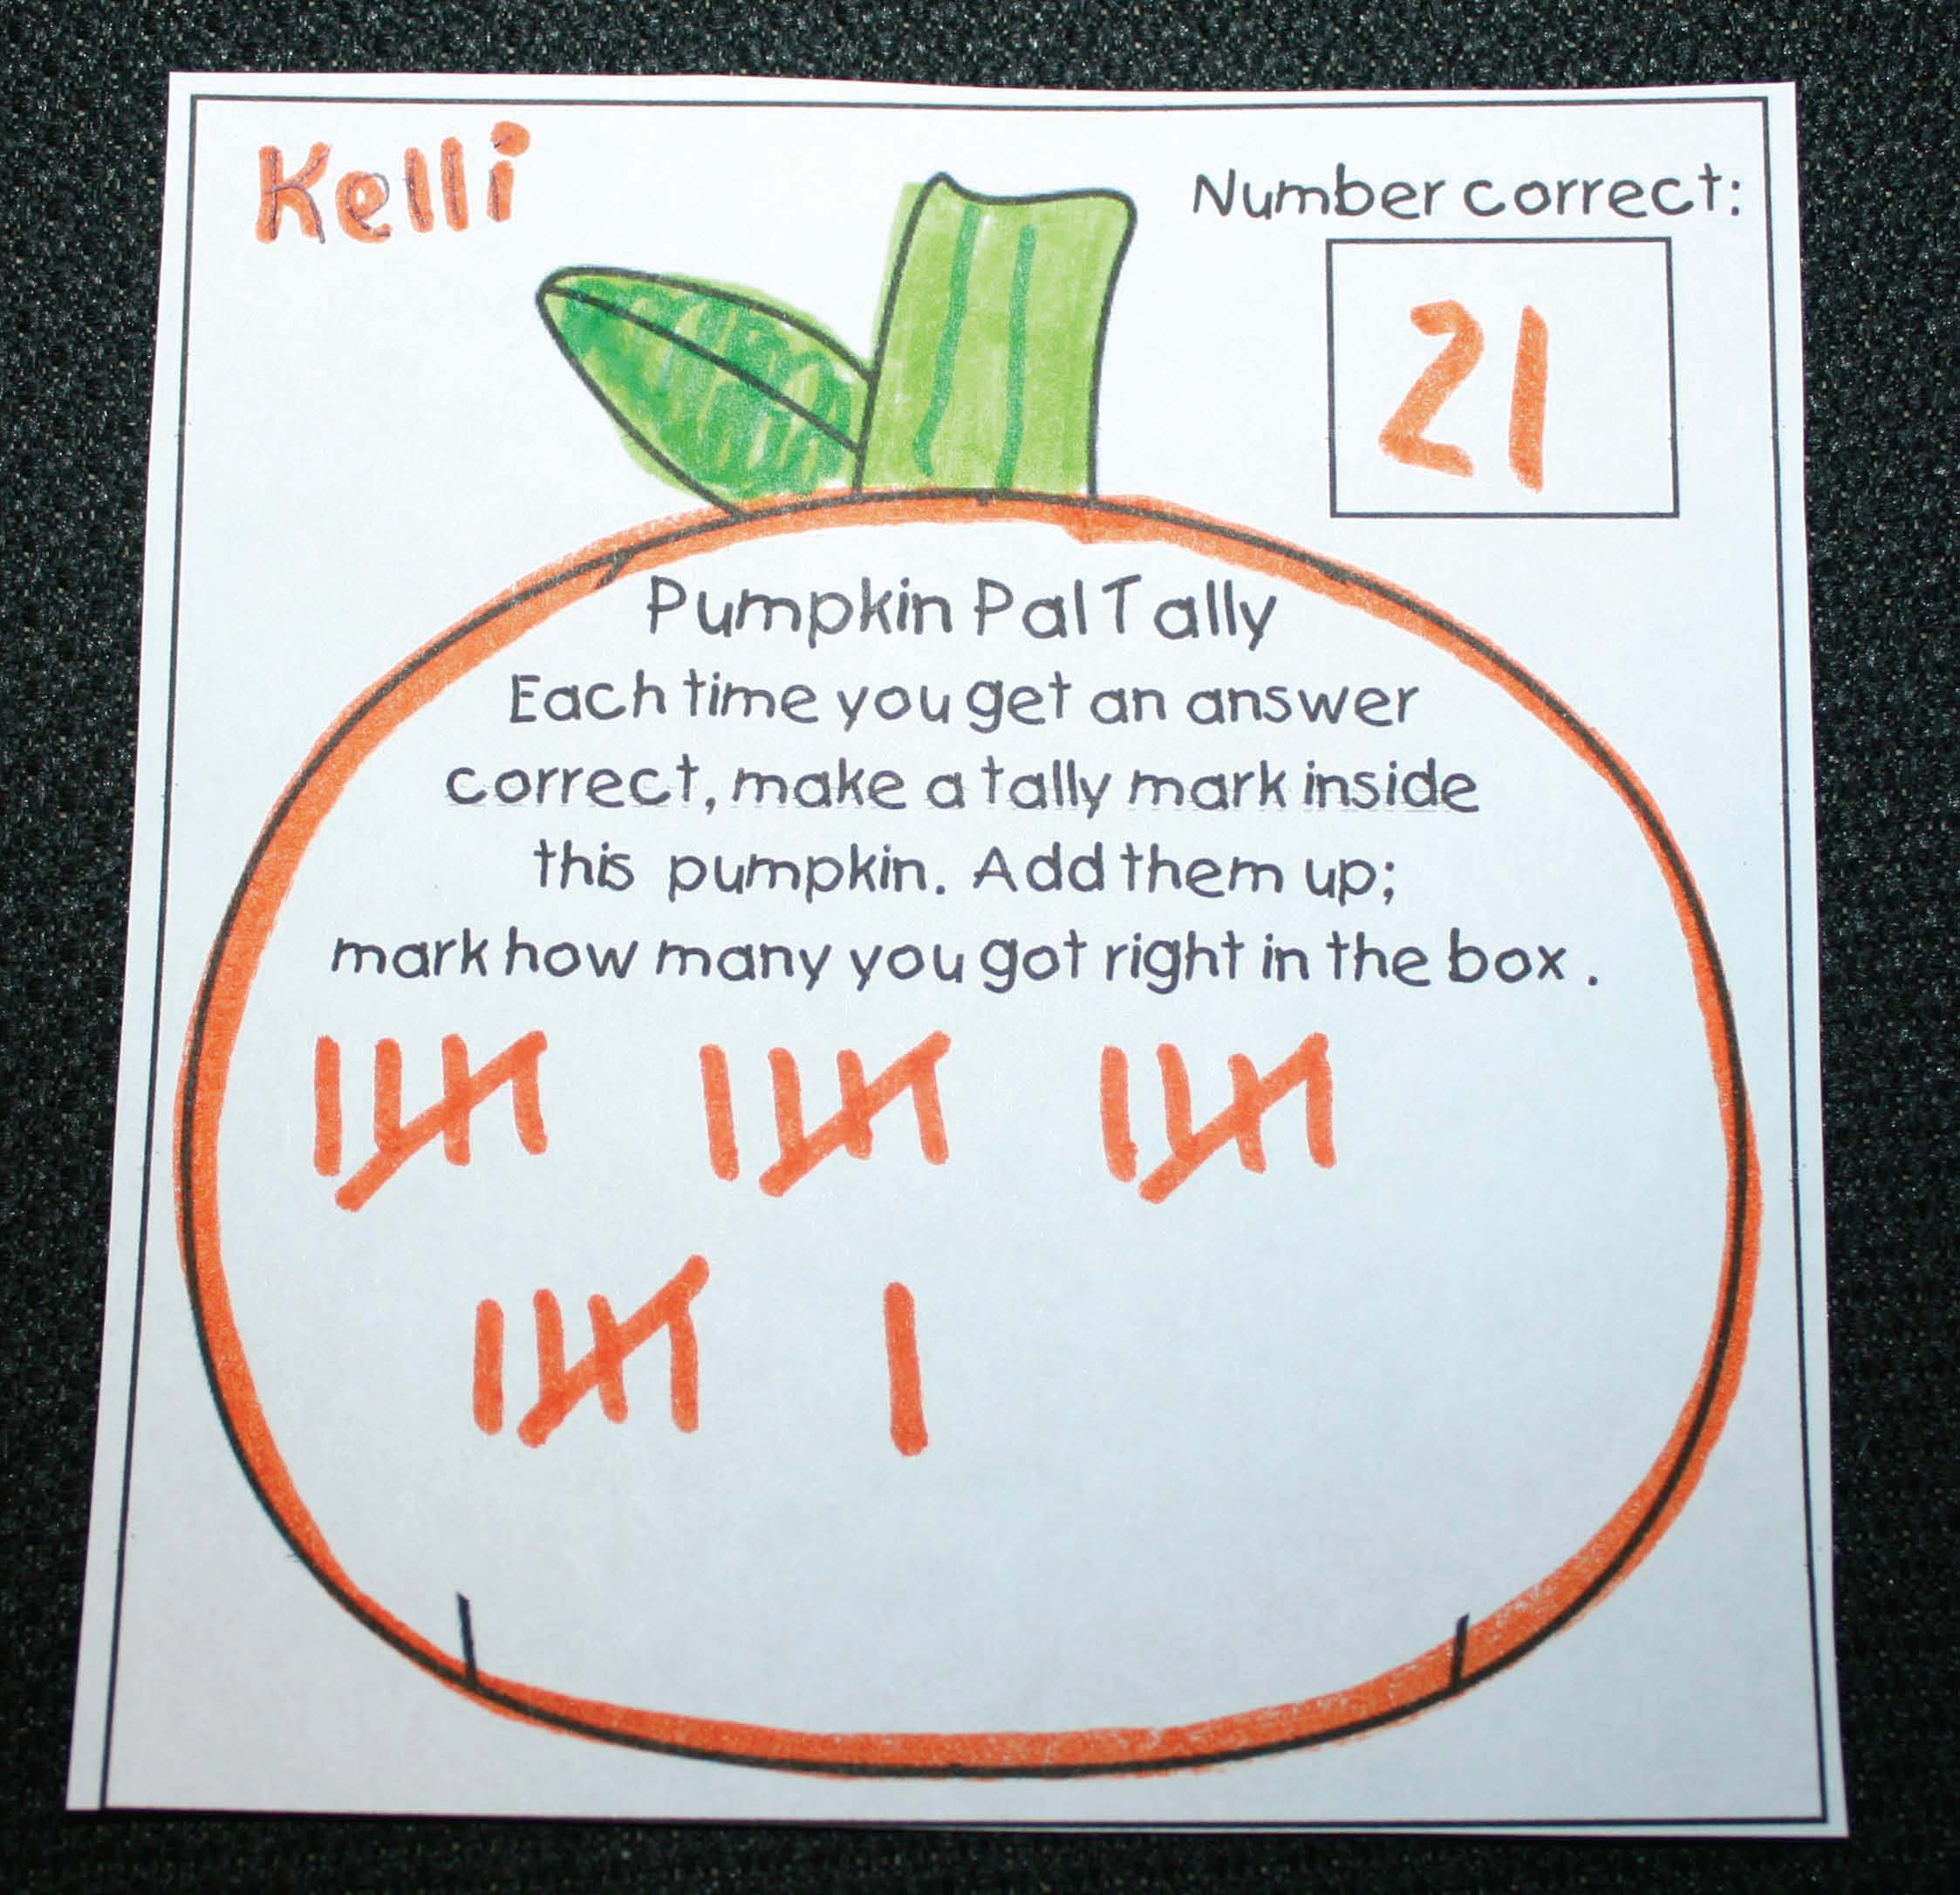 pumpkin activities, pumpkin lessons, pumpkin mazes, pumpkin word finds, alphabet activities,upper and lowercase letter matching activities, October alphabet cards, free alphabet cards, free ghost cards, ghost activities, halloween activities, halloween games, alphabet games, common core pumpkins, pumpkin math, pumpkin centers, counting activities, 1-to-1 correspondence activities, fall math centers, fall math activities, october math centers, october math activities